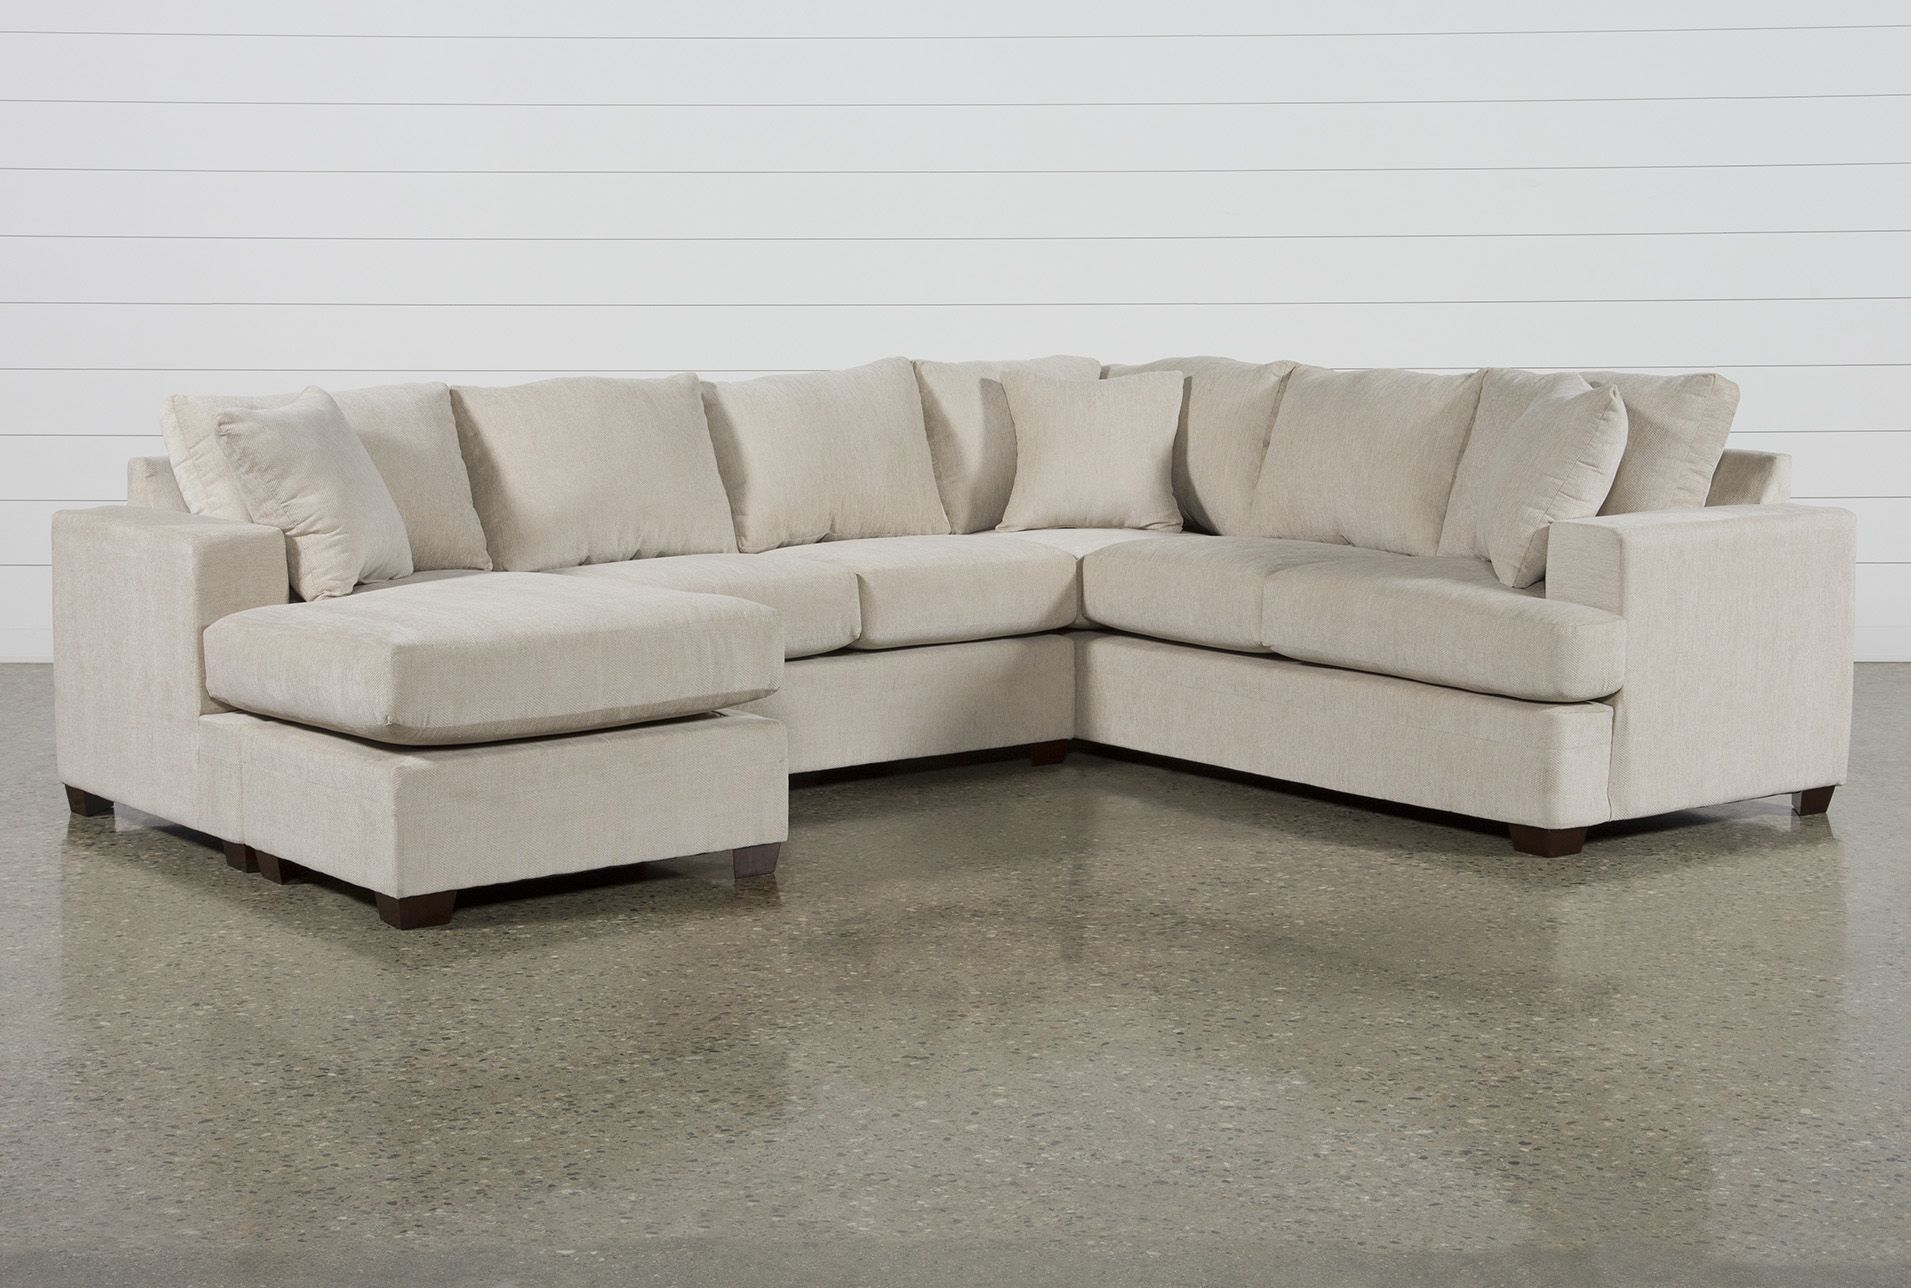 Best Kerri Sand 2 Piece Sectional Sofa With Left Arm Facing 400 x 300